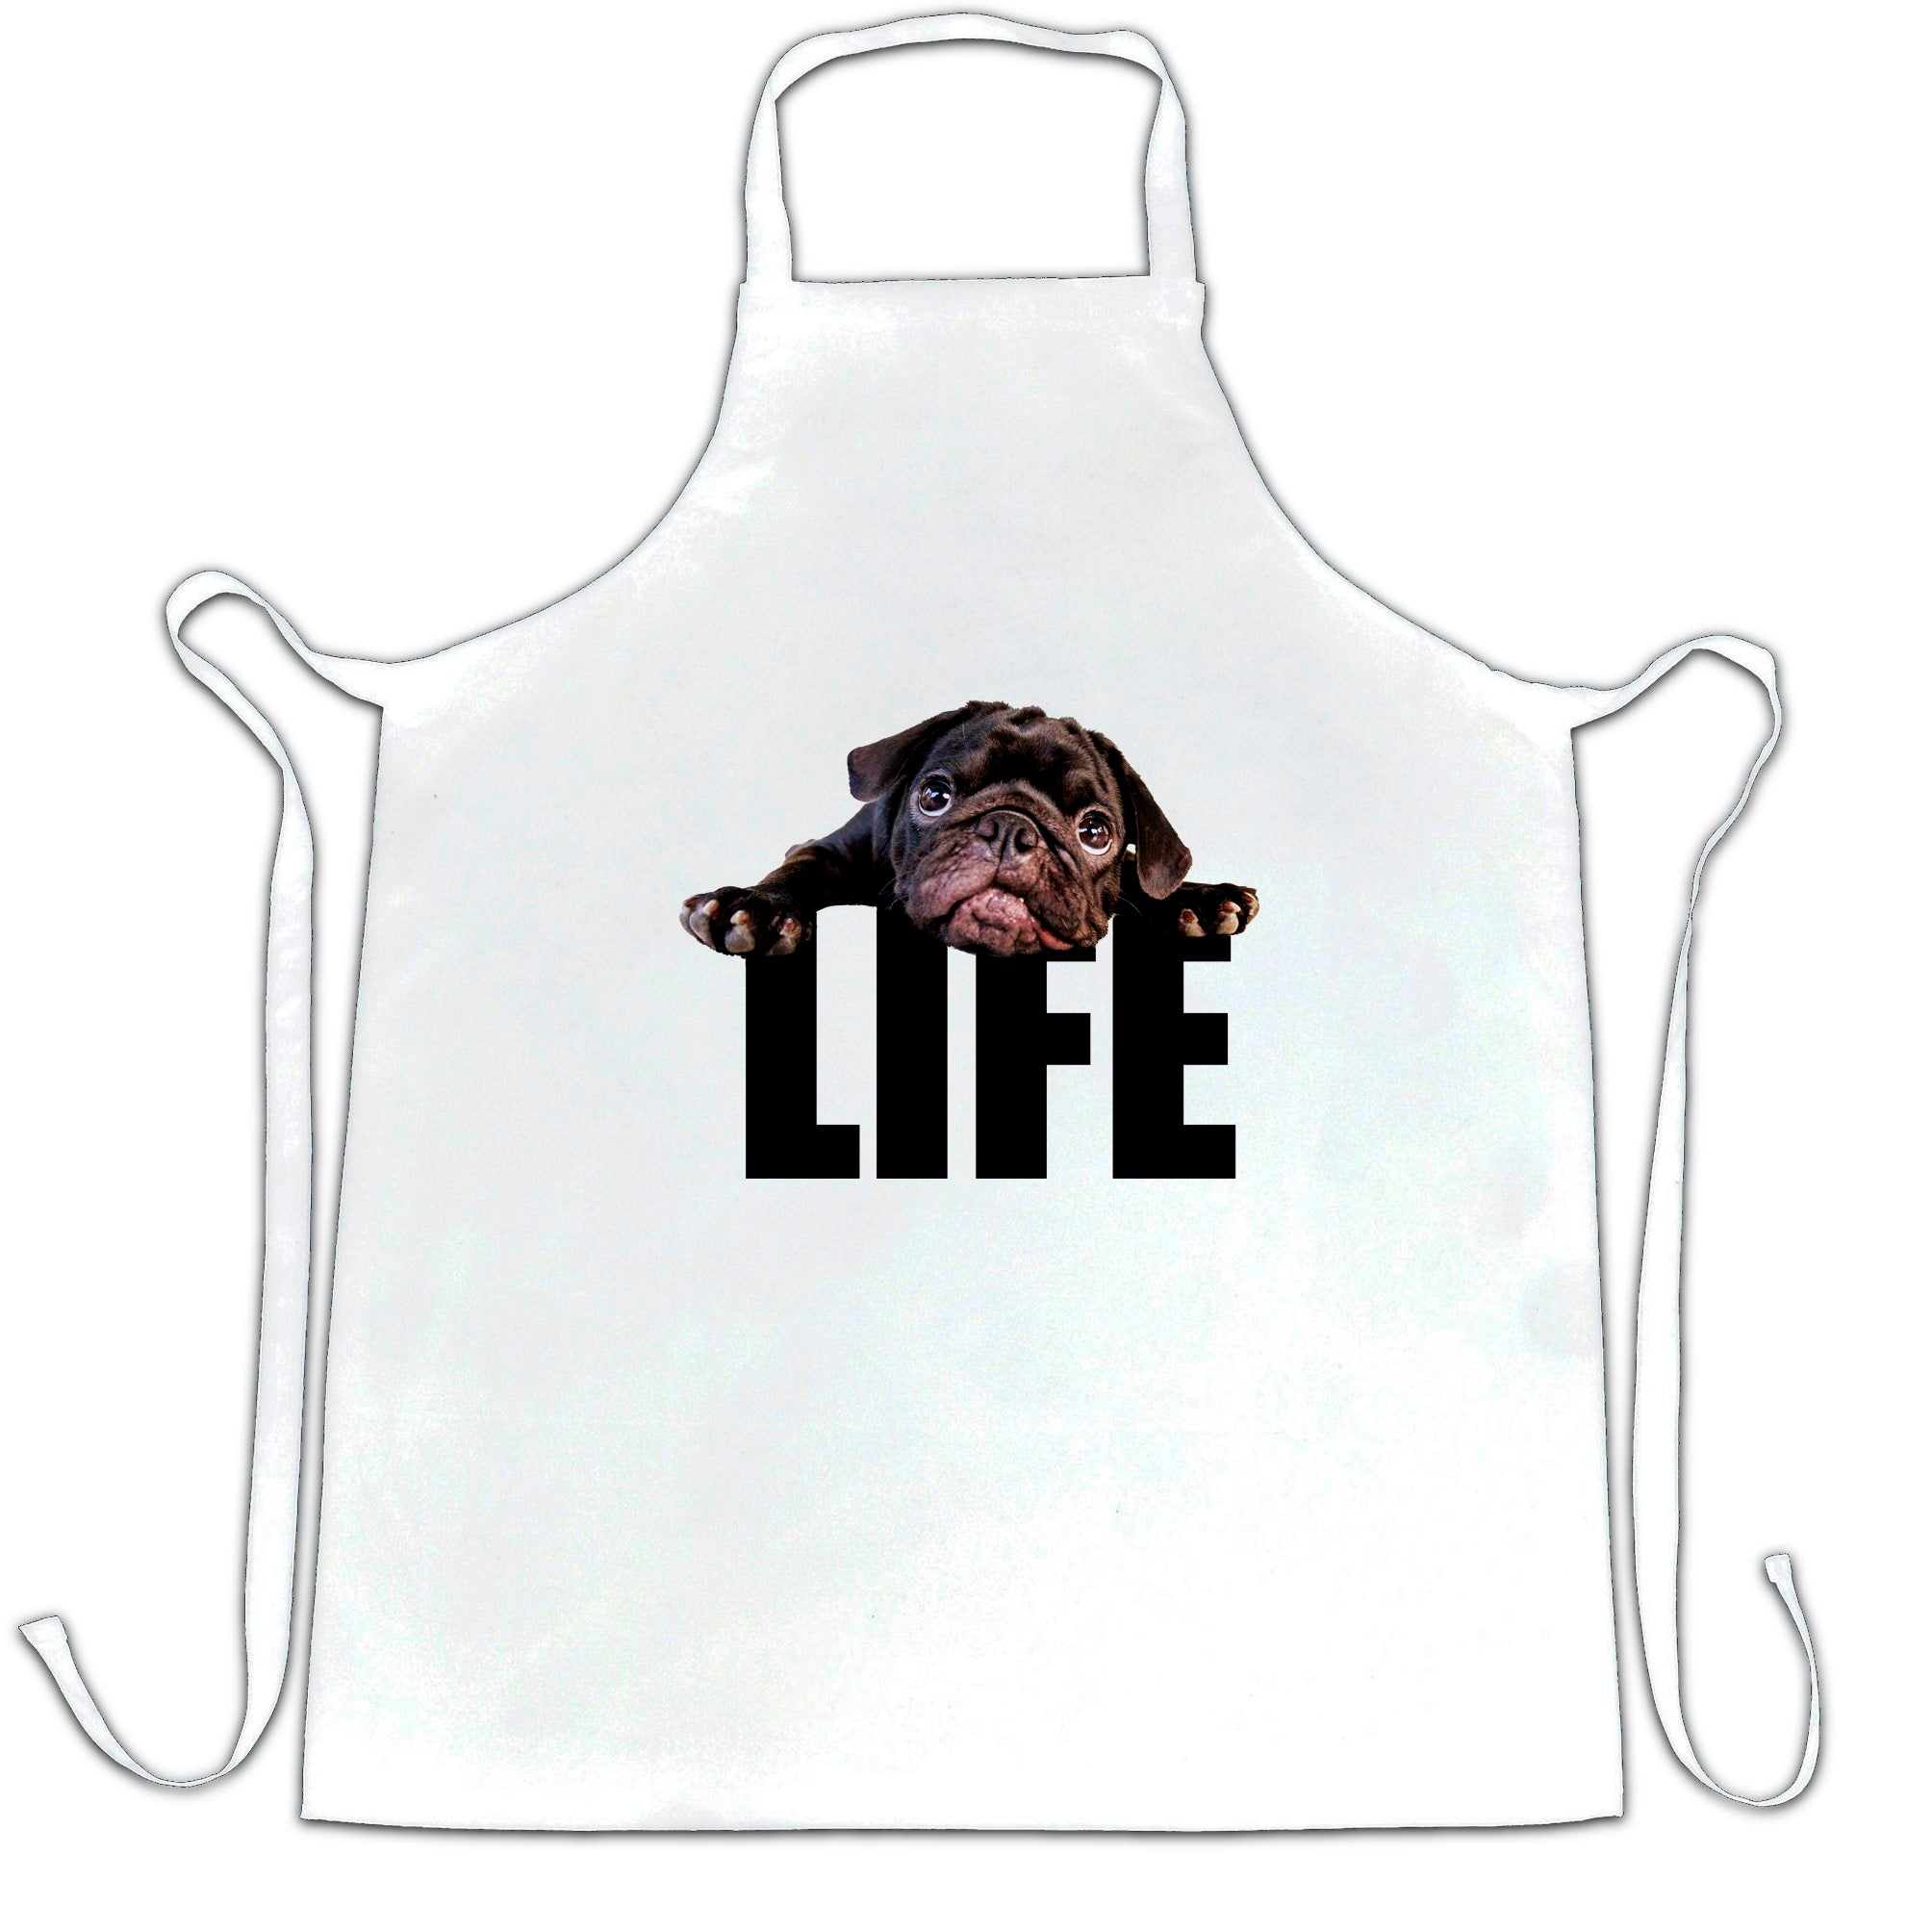 Cute Dog Chef's Apron Pug Life Puppy